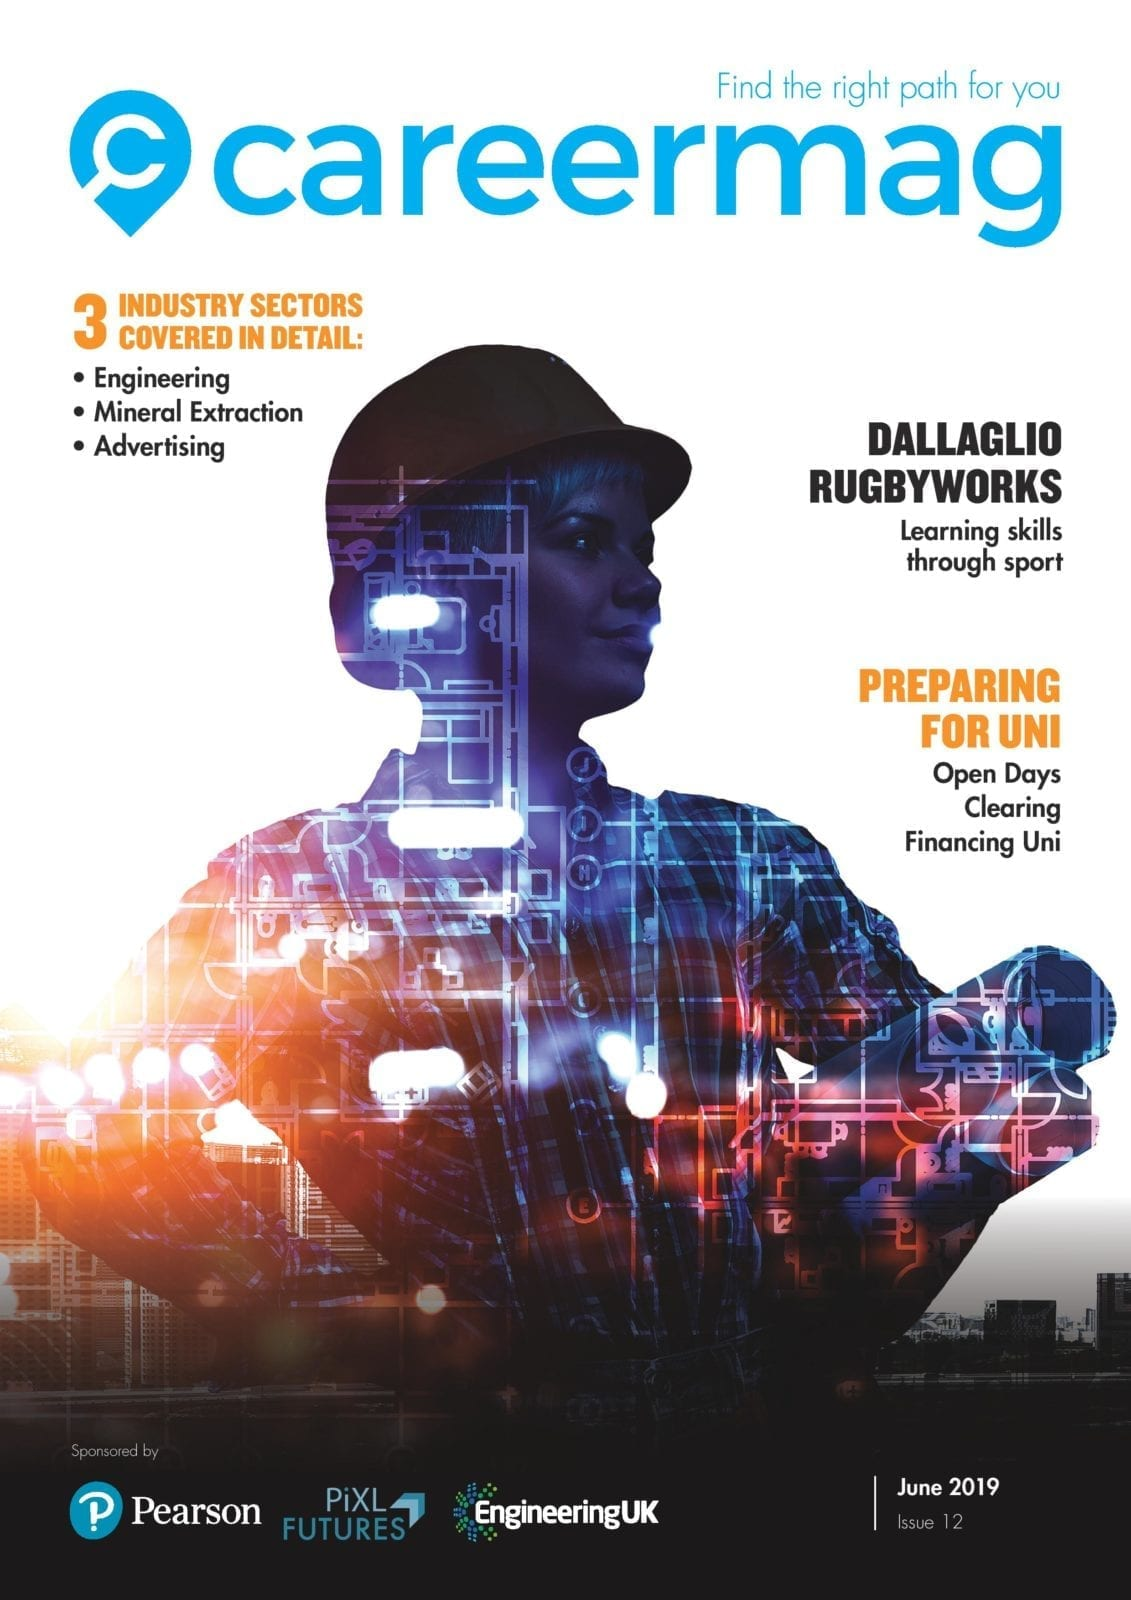 Check out the next issue of Careermag. Covering Engineering, mineral extraction, advertising as well as how to prepare for University. Out 11th November.